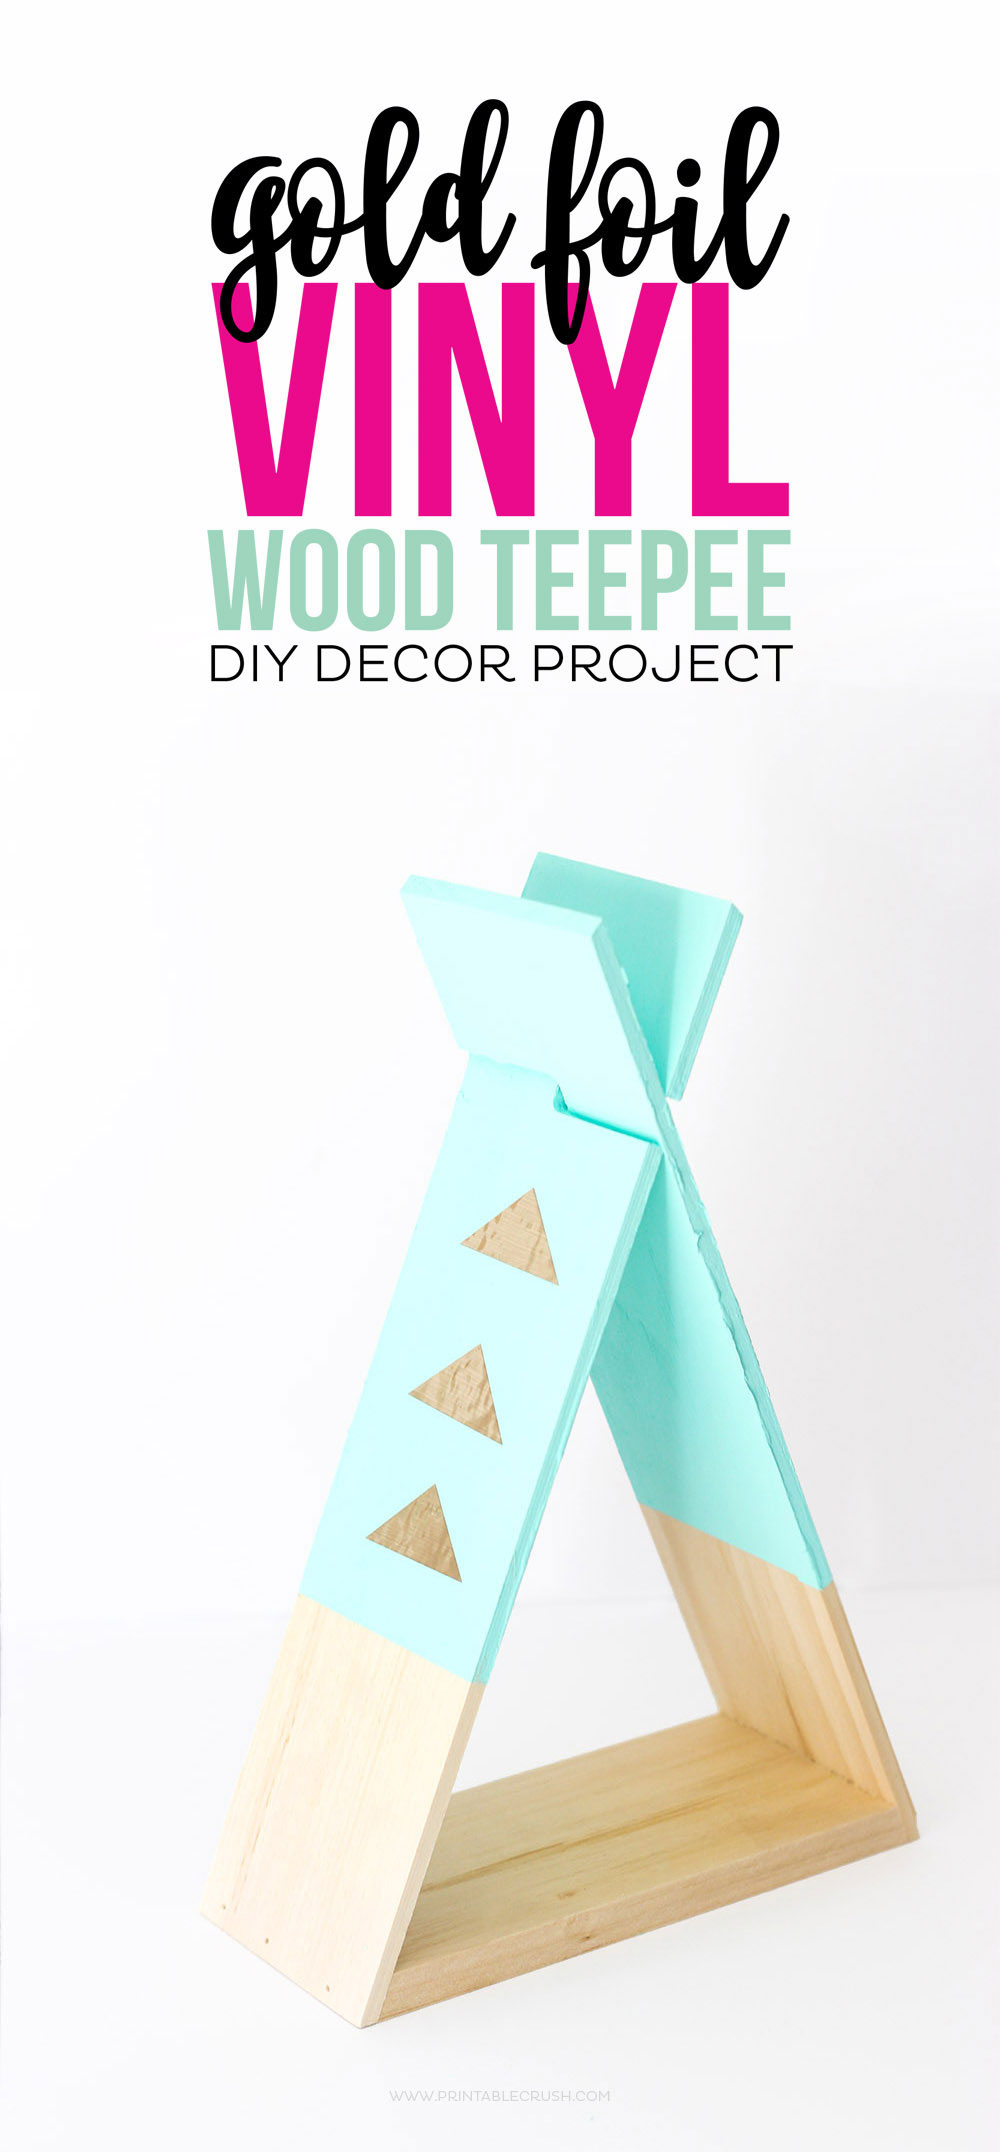 Make this wood teepee for a desk or bookshelf